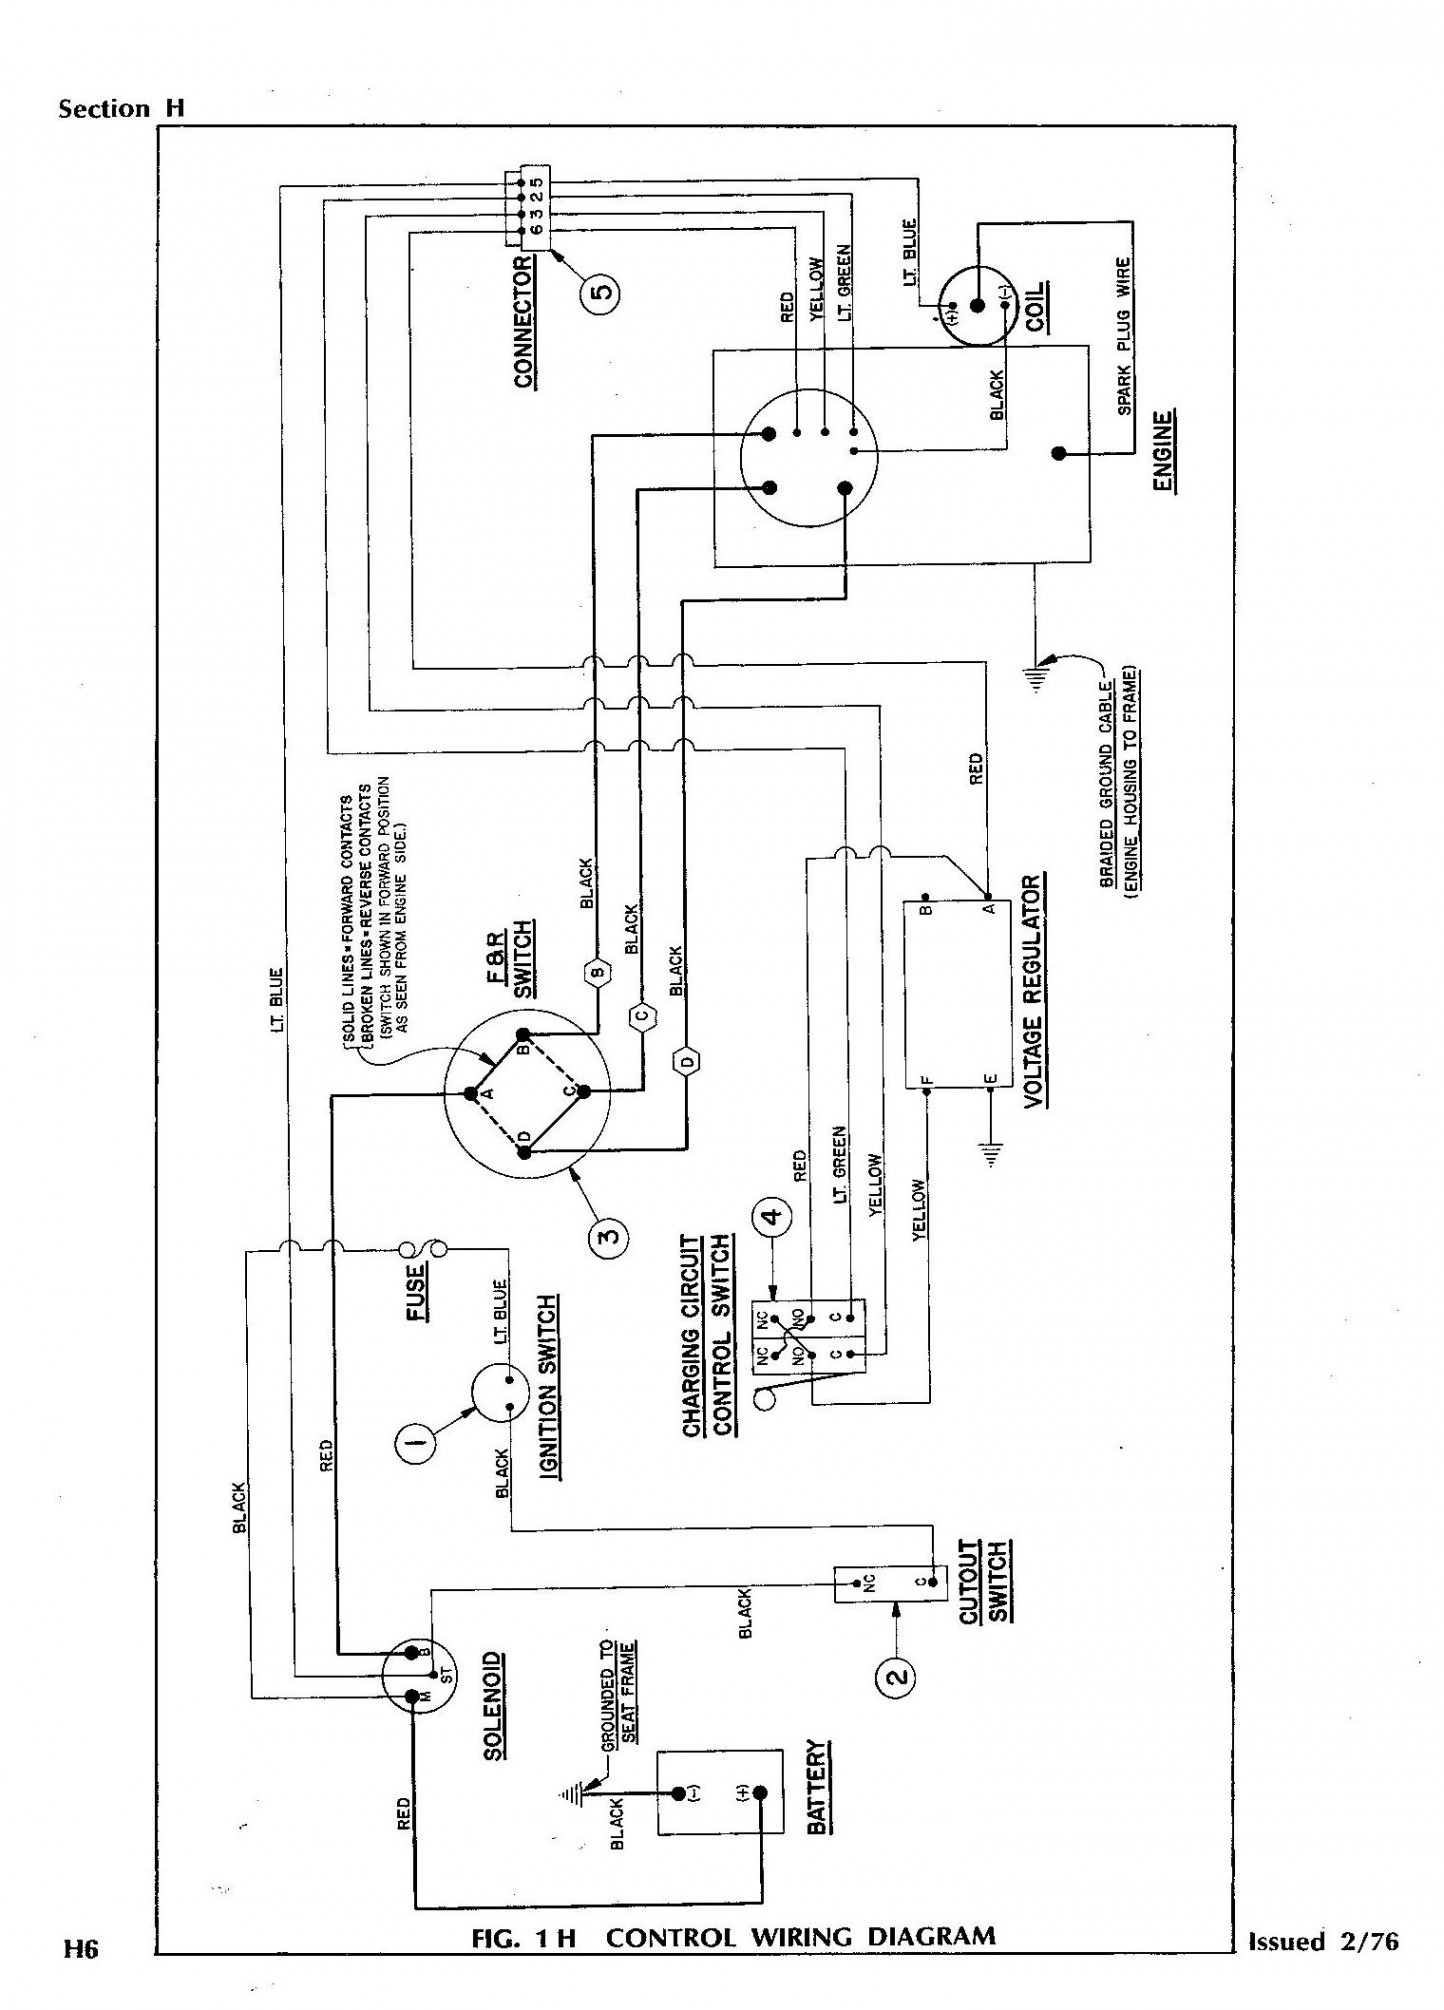 36 Volt Ez Go Gas Golf Cart Wiring Diagram Pdf from wholefoodsonabudget.com